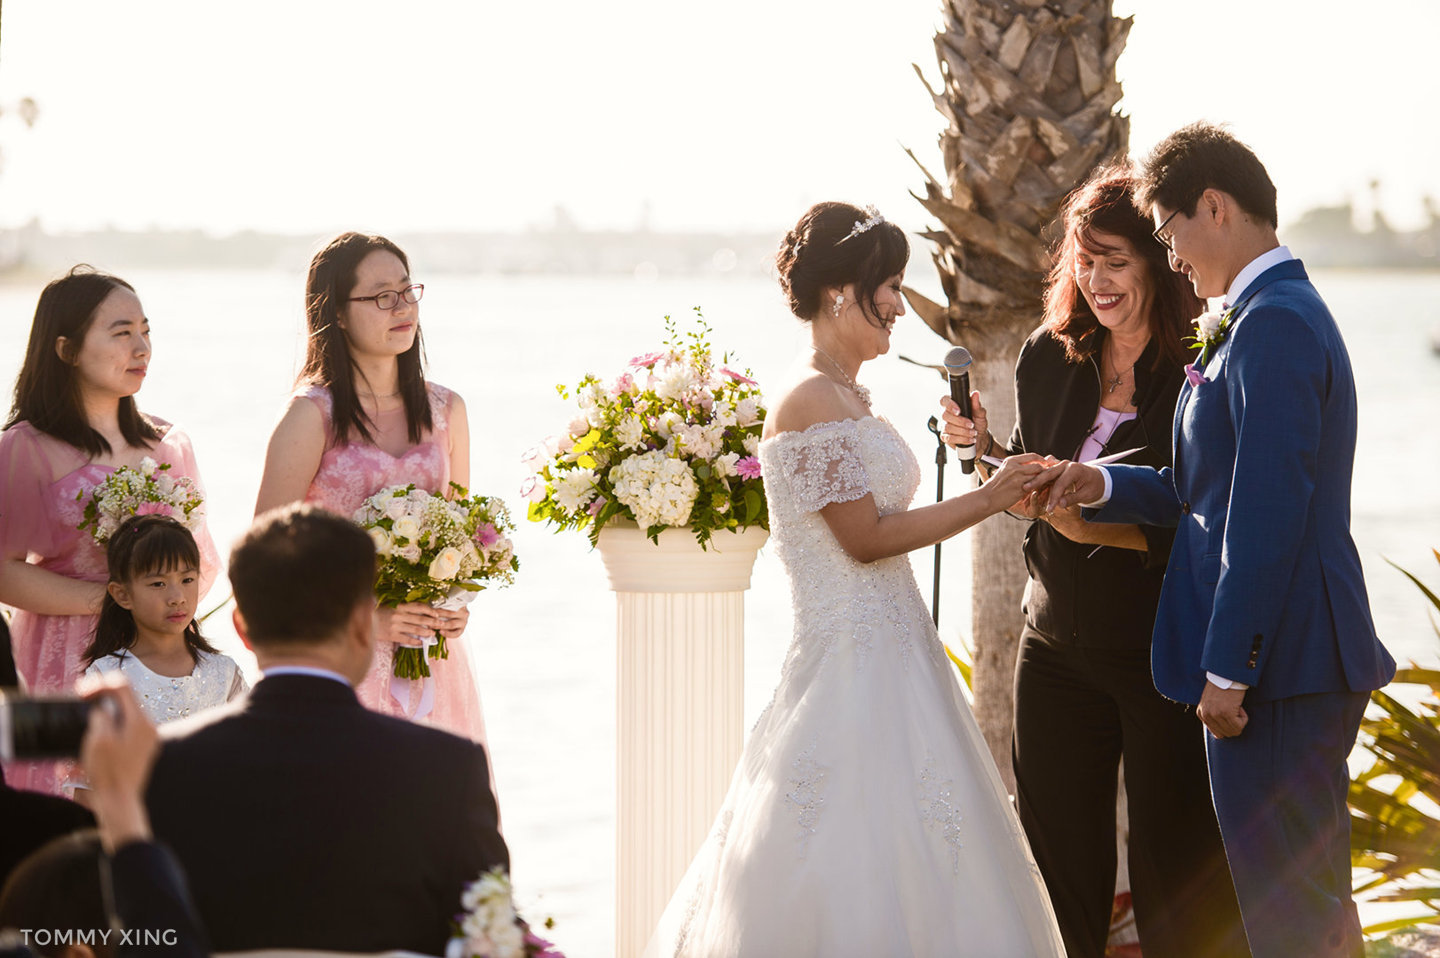 Paradise Point Resort Wedding Xiaolu & Bin San Diego 圣地亚哥婚礼摄影跟拍 Tommy Xing Photography 洛杉矶婚礼婚纱照摄影师 158.jpg